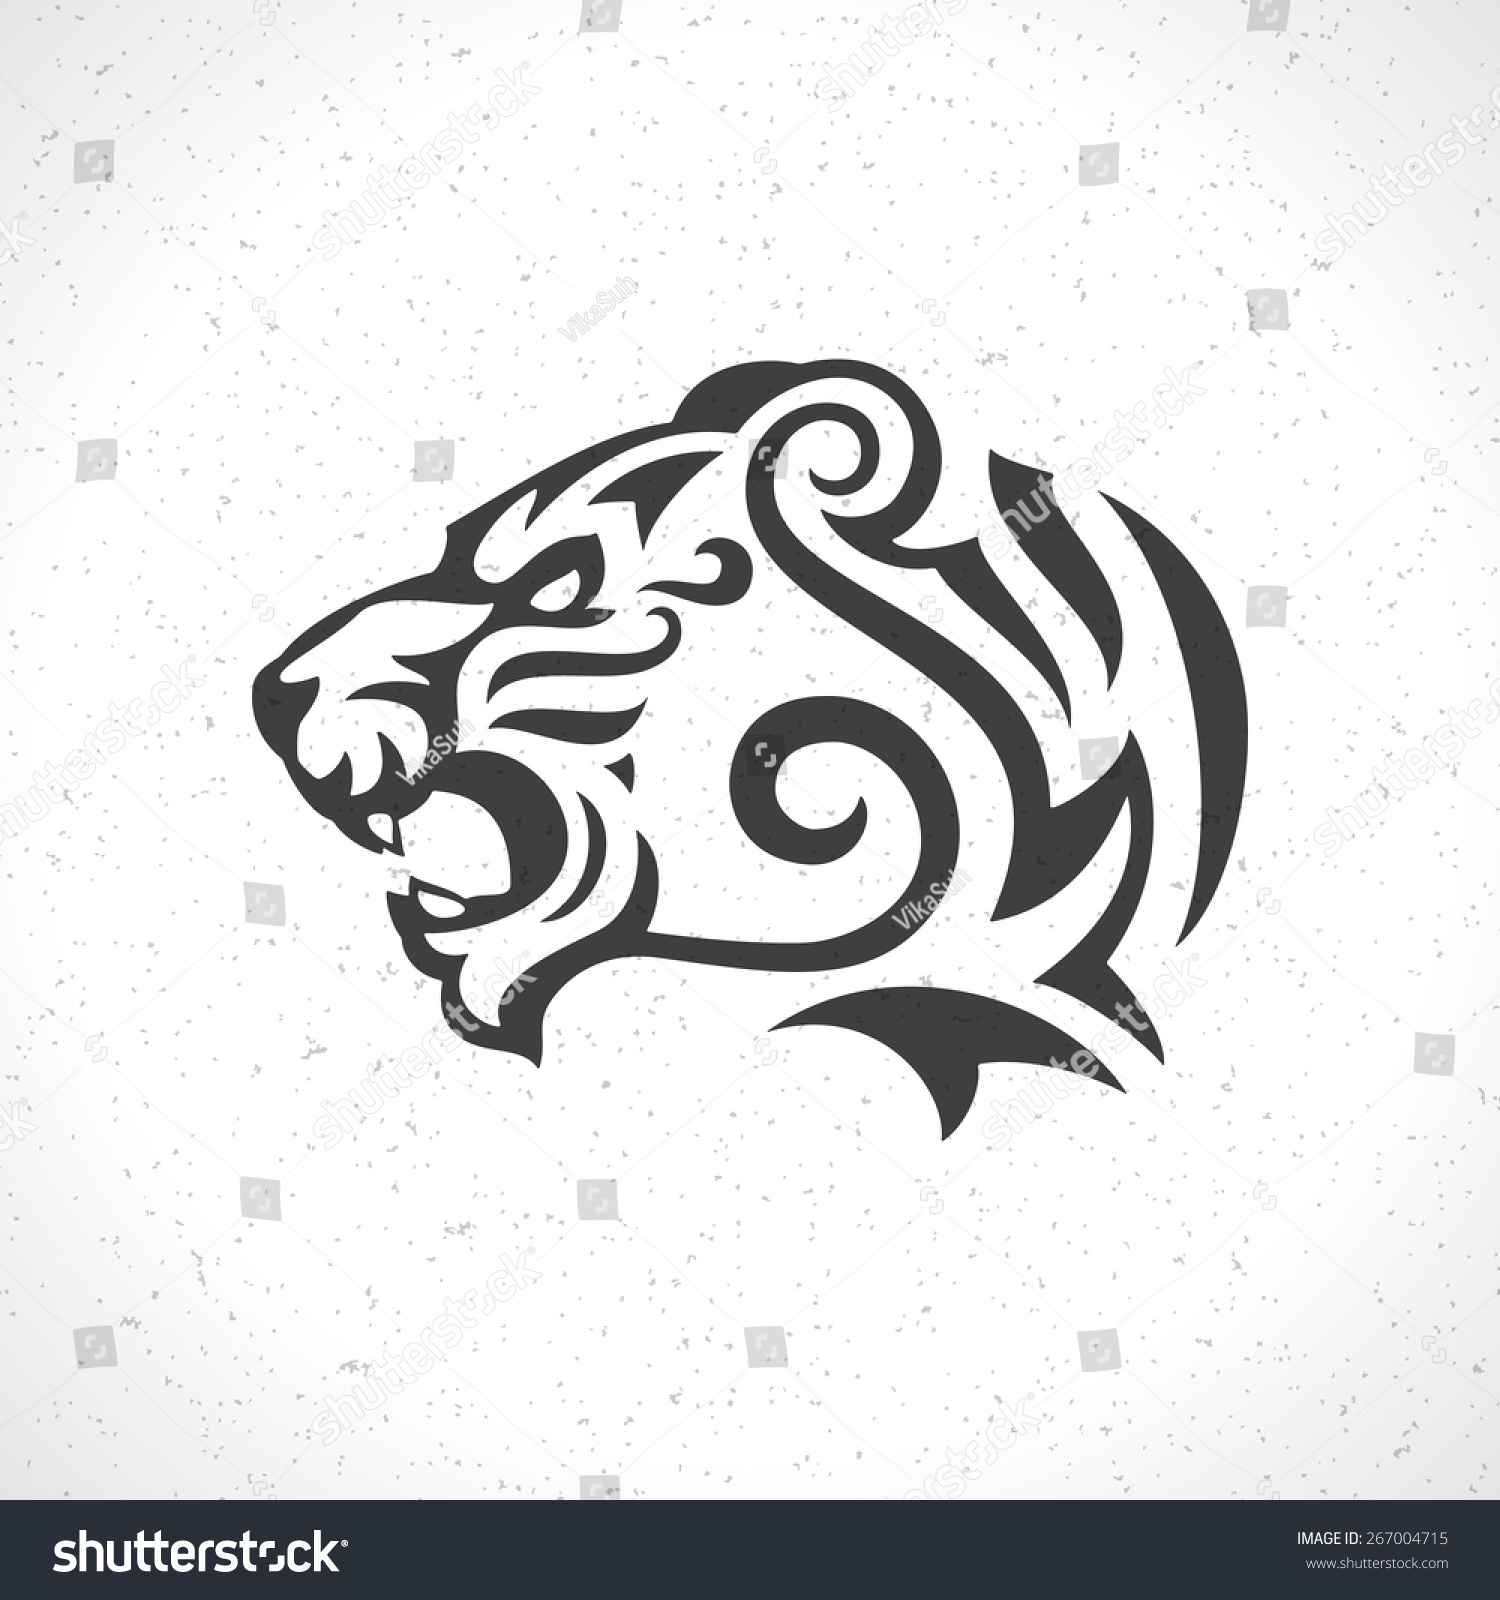 Tiger head logo design - photo#8